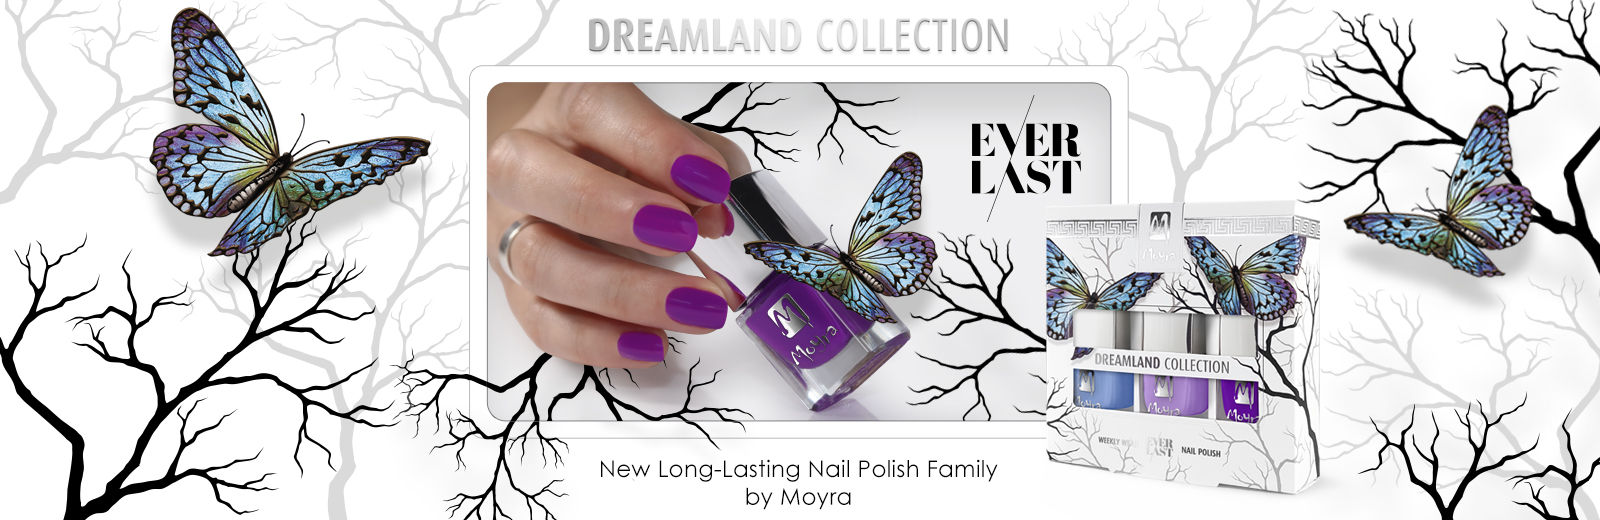 Moyra EverLast Nail Polish Dreamland Collection